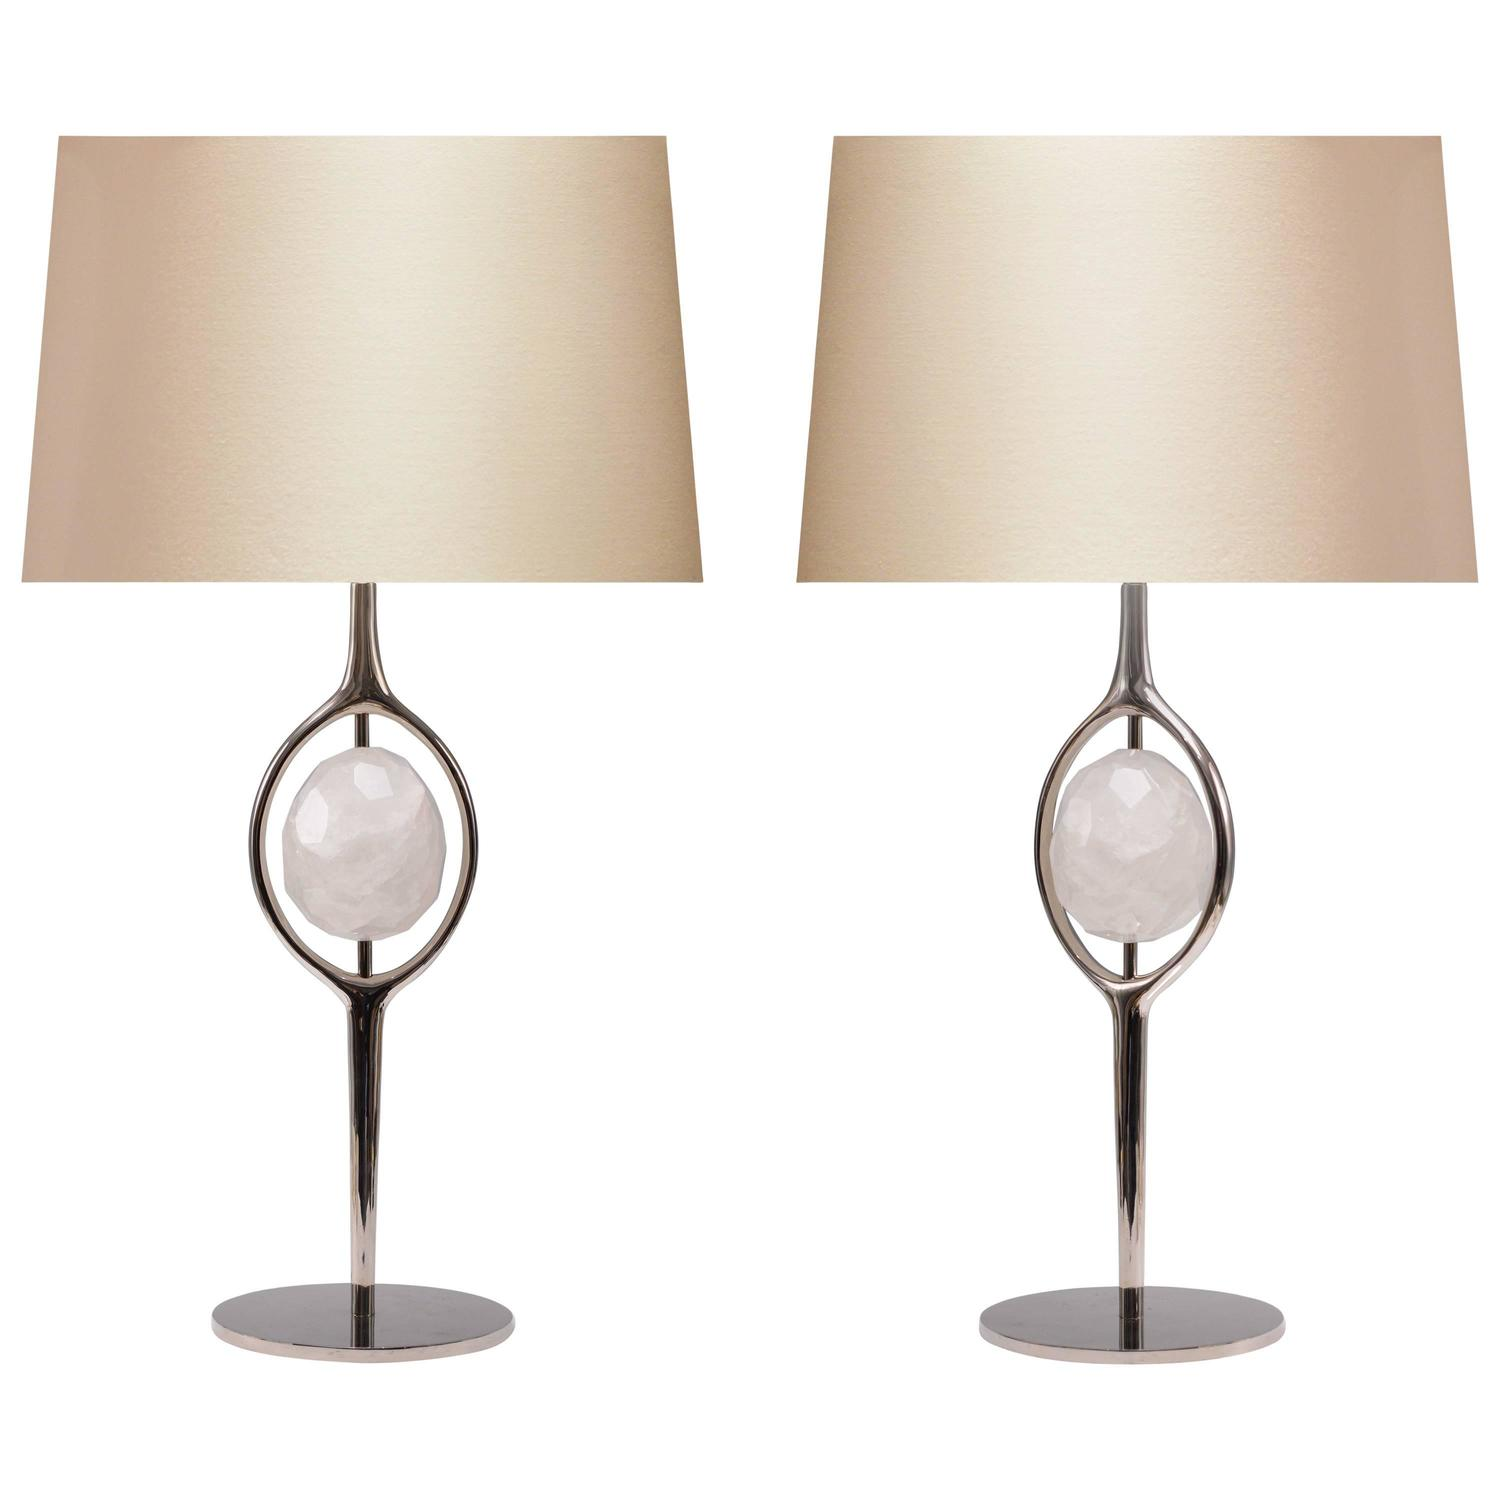 pair of modern rock crystal quartz lamps for sale at 1stdibs. Black Bedroom Furniture Sets. Home Design Ideas